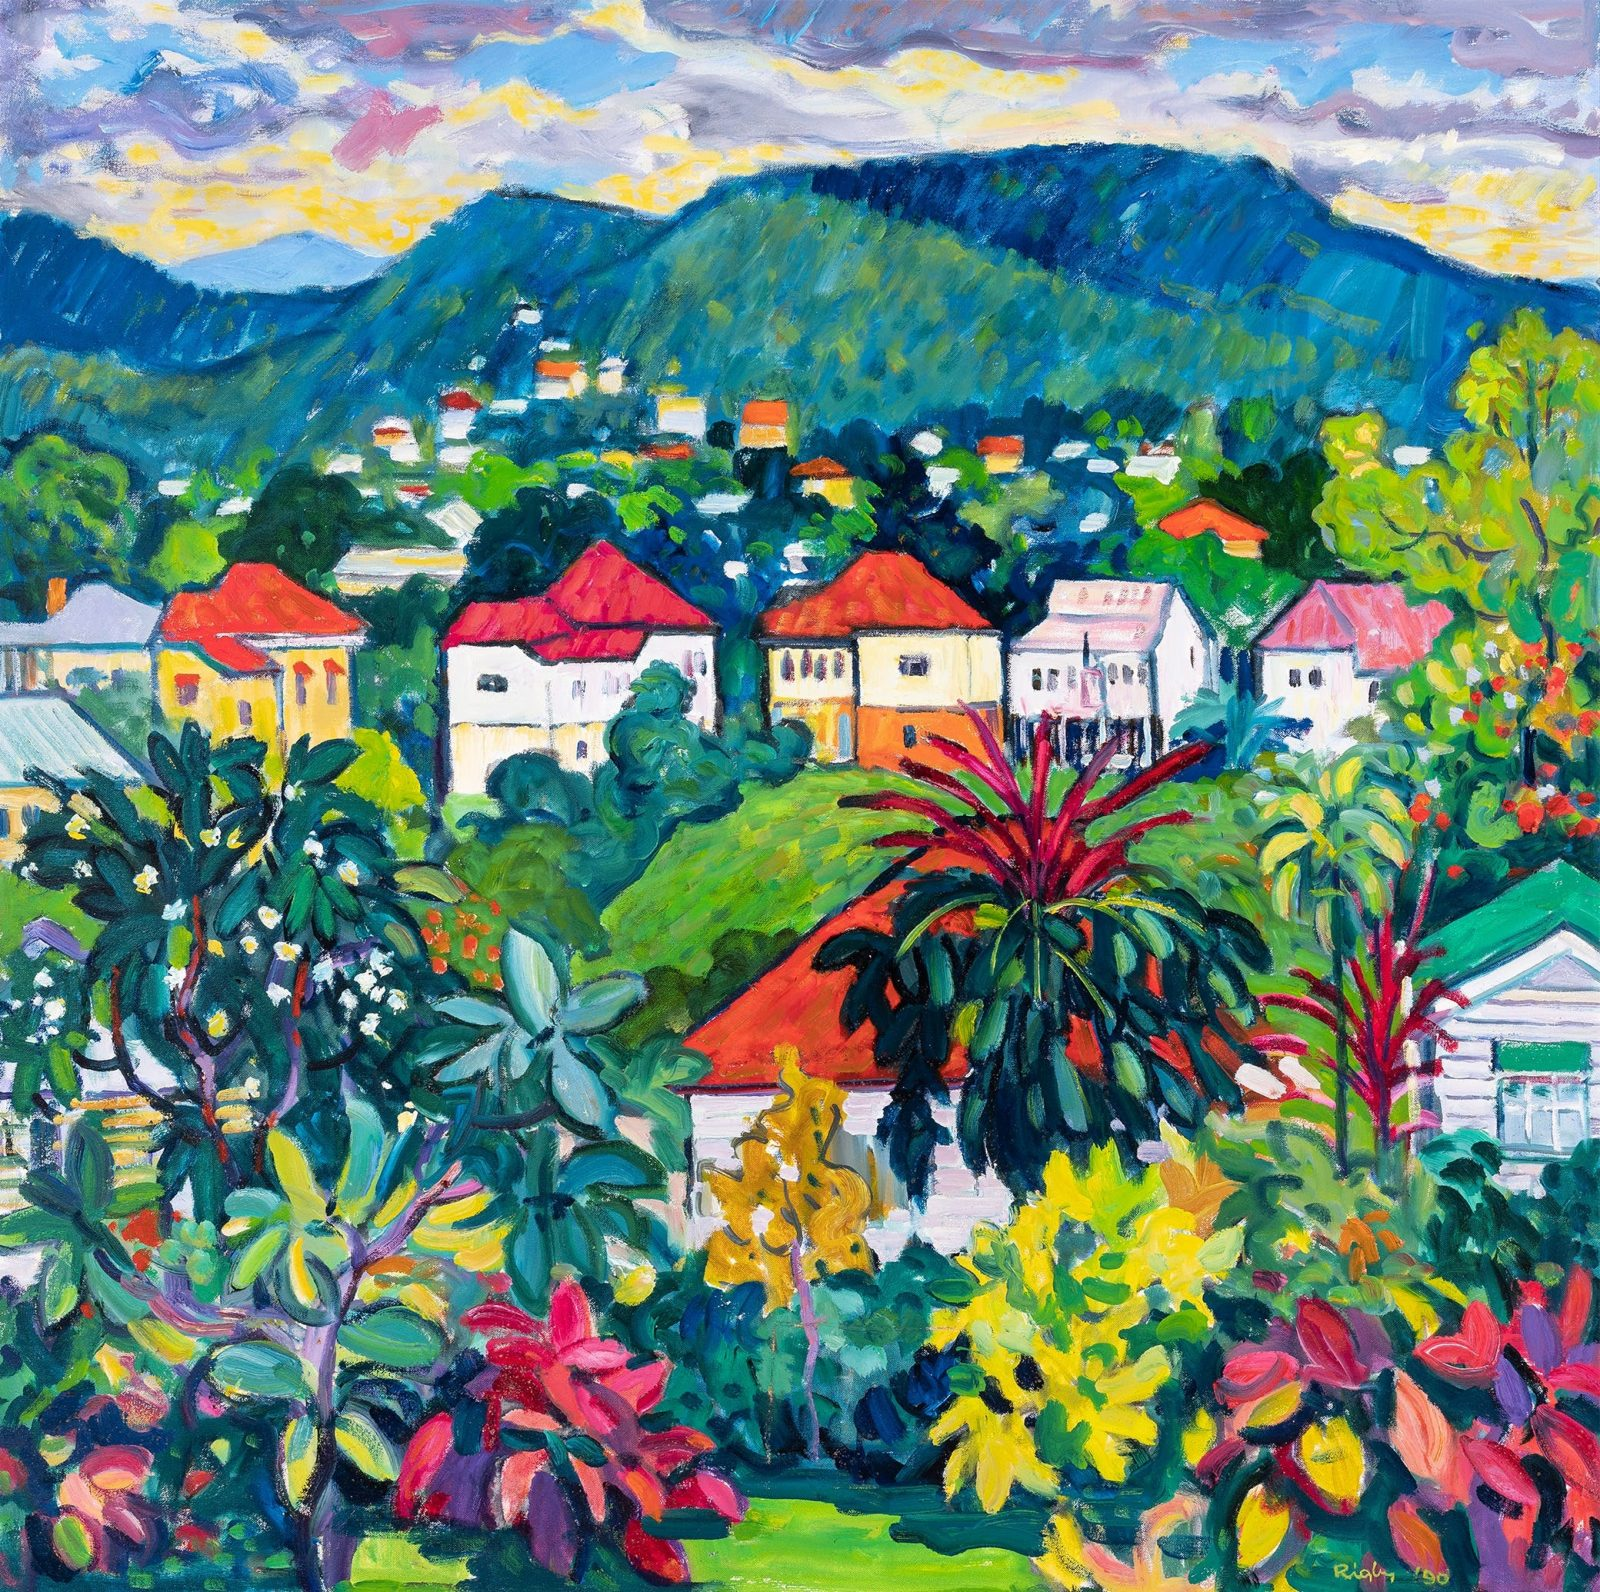 John Rigby, Western Suburbs (detail), c. 1990, oil on canvas board, photographed by Carl Warner.